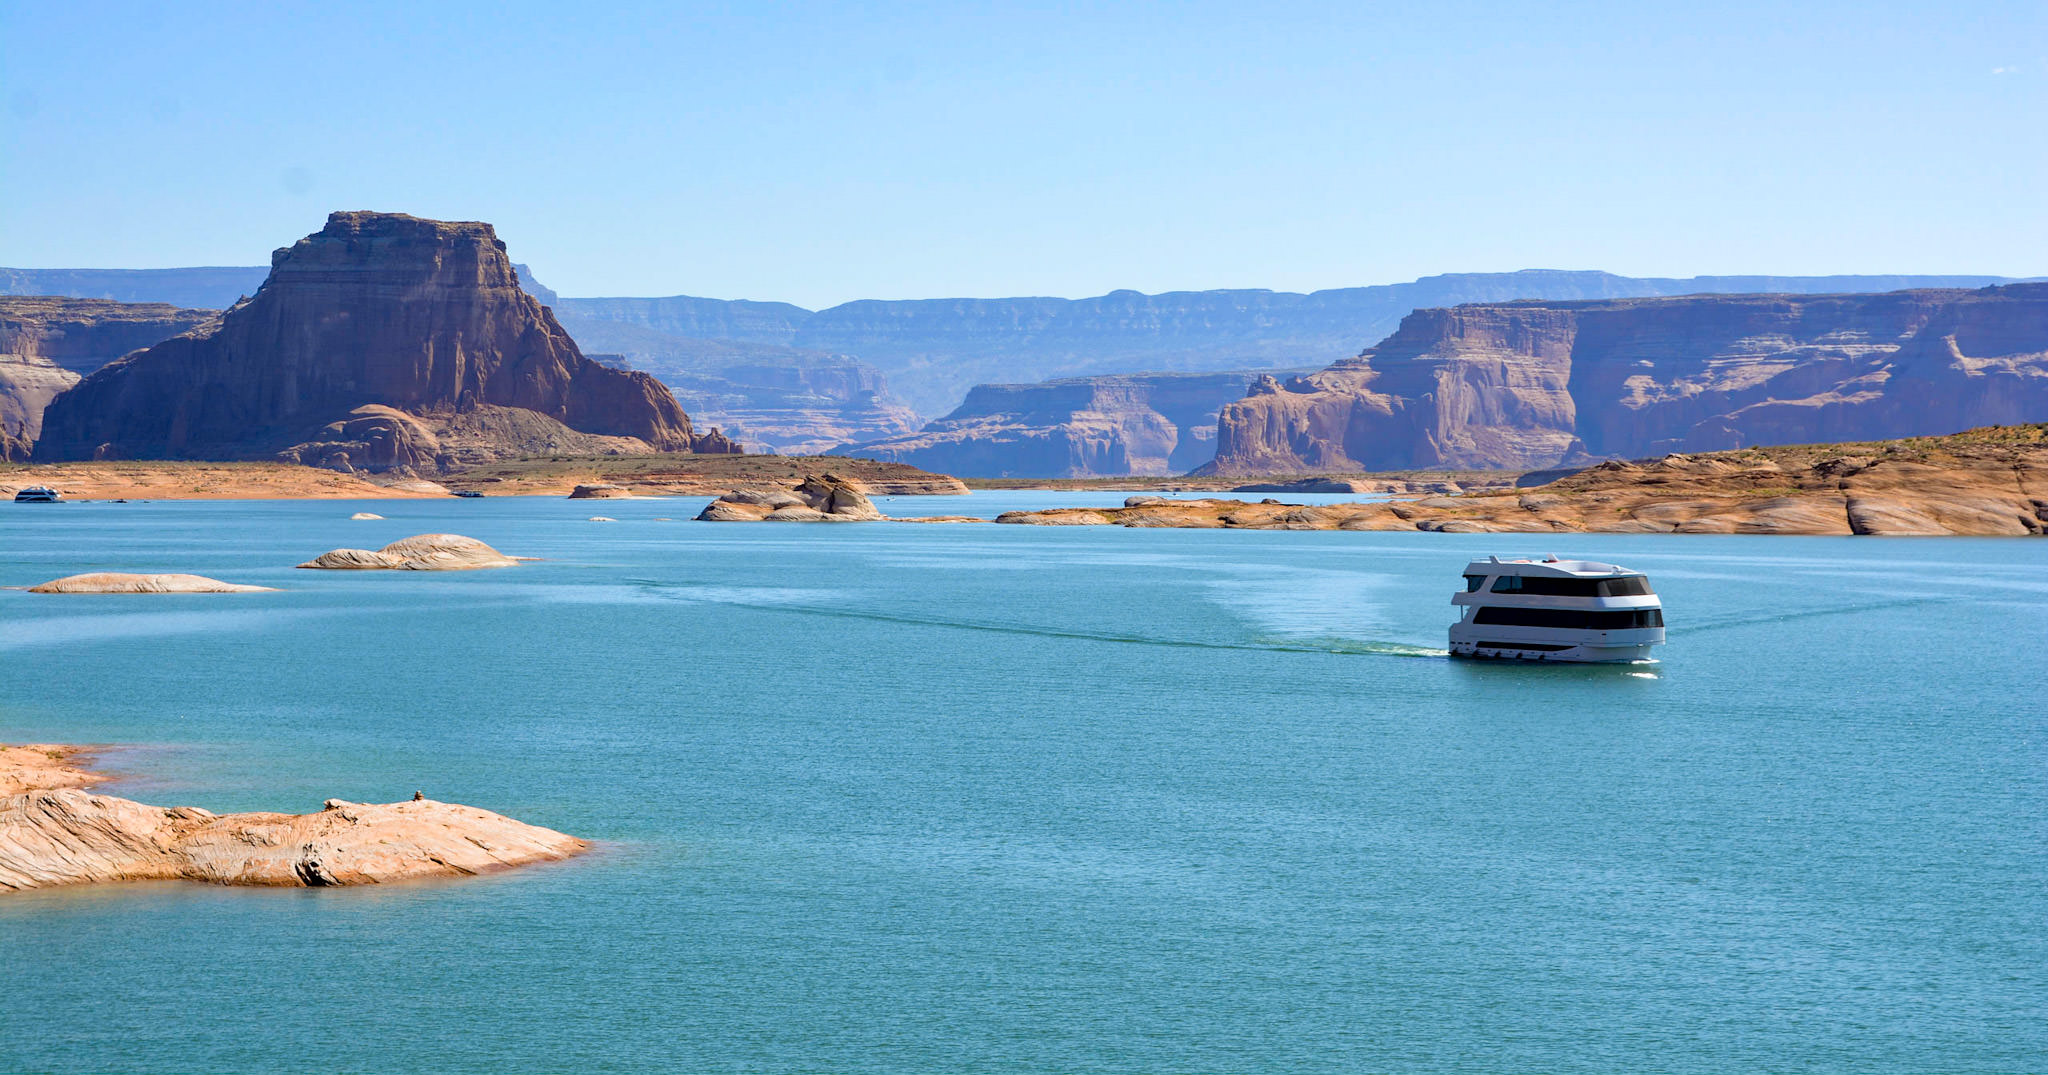 Your Own Floating Hotel on Lake Powell